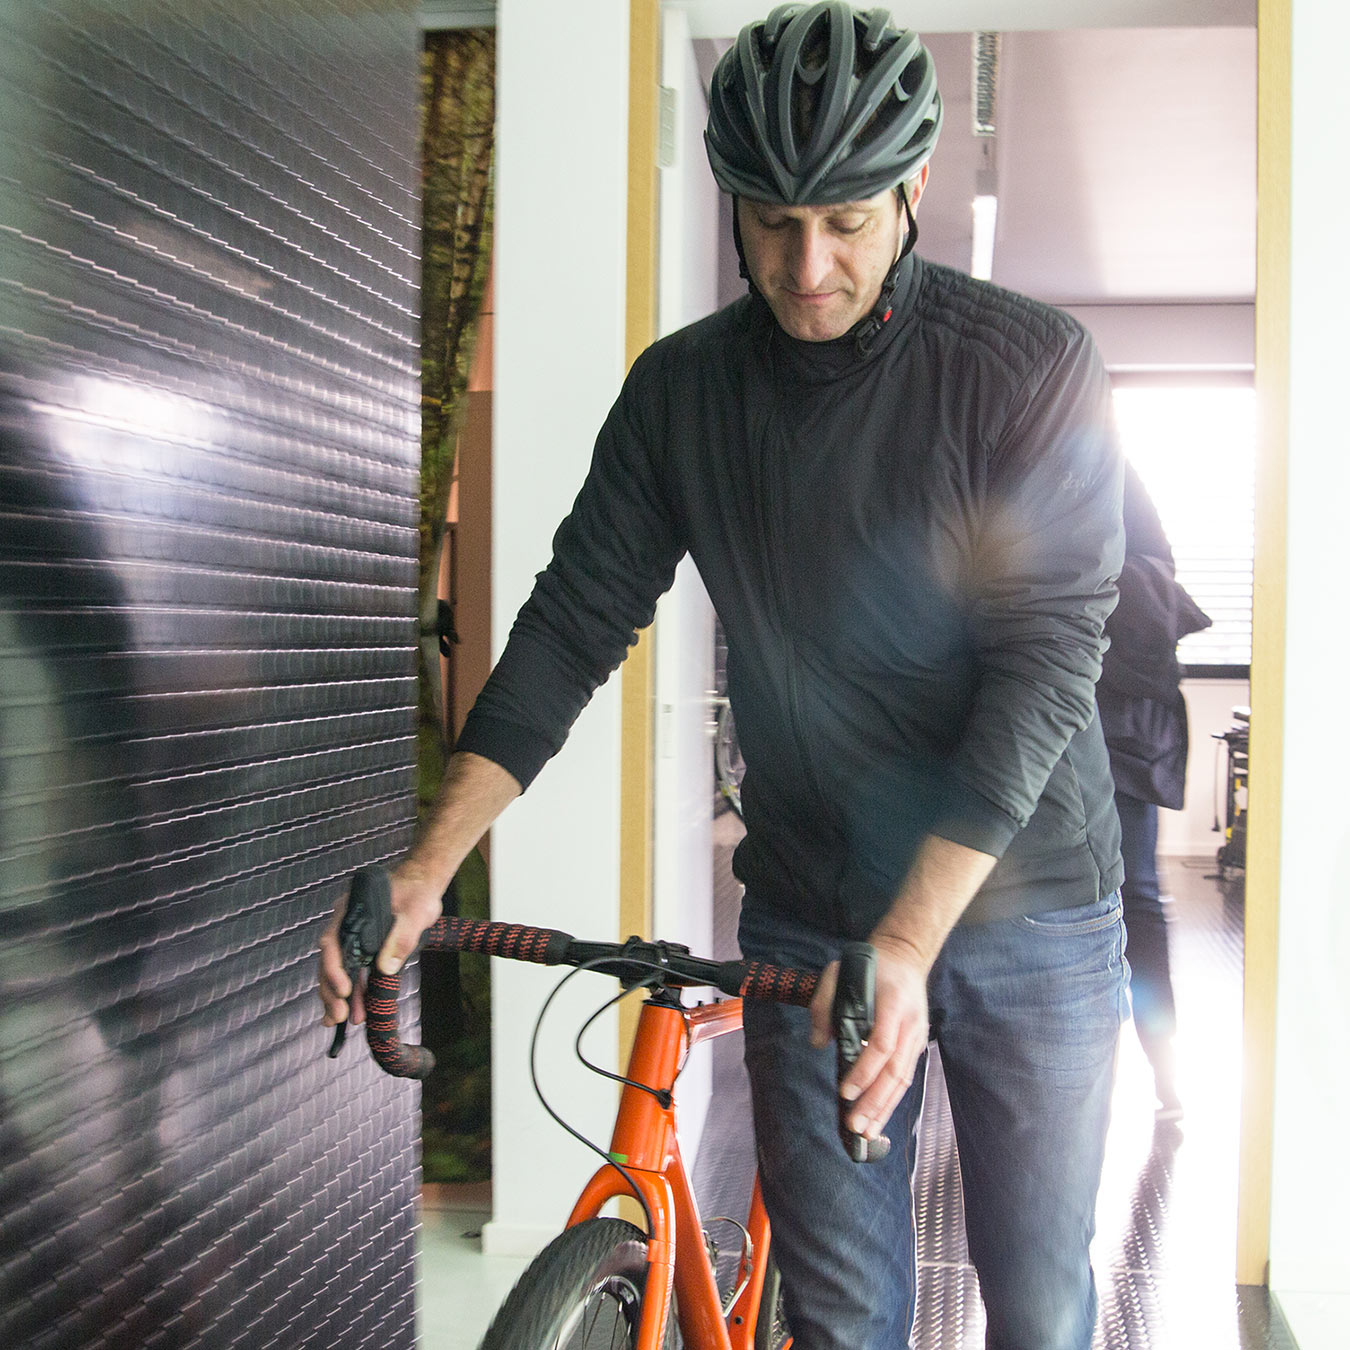 A bike is pushed through the corridors at Ergon headquarters.